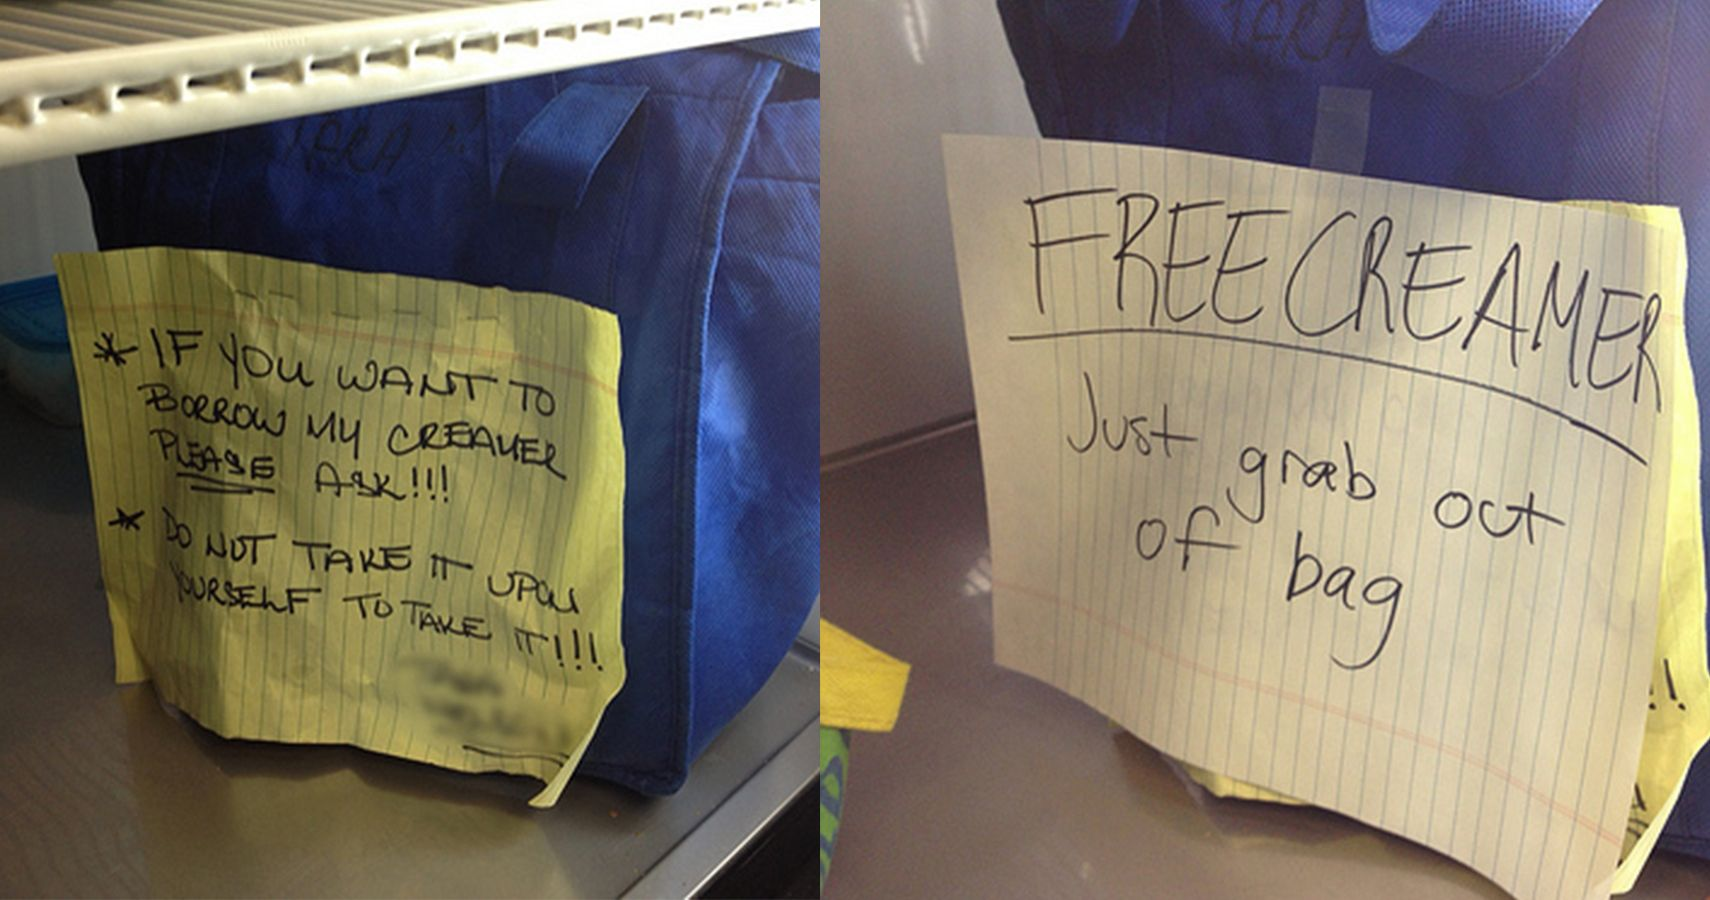 15 Passive Aggressive Office Notes That Are Both Hilarious And Annoying